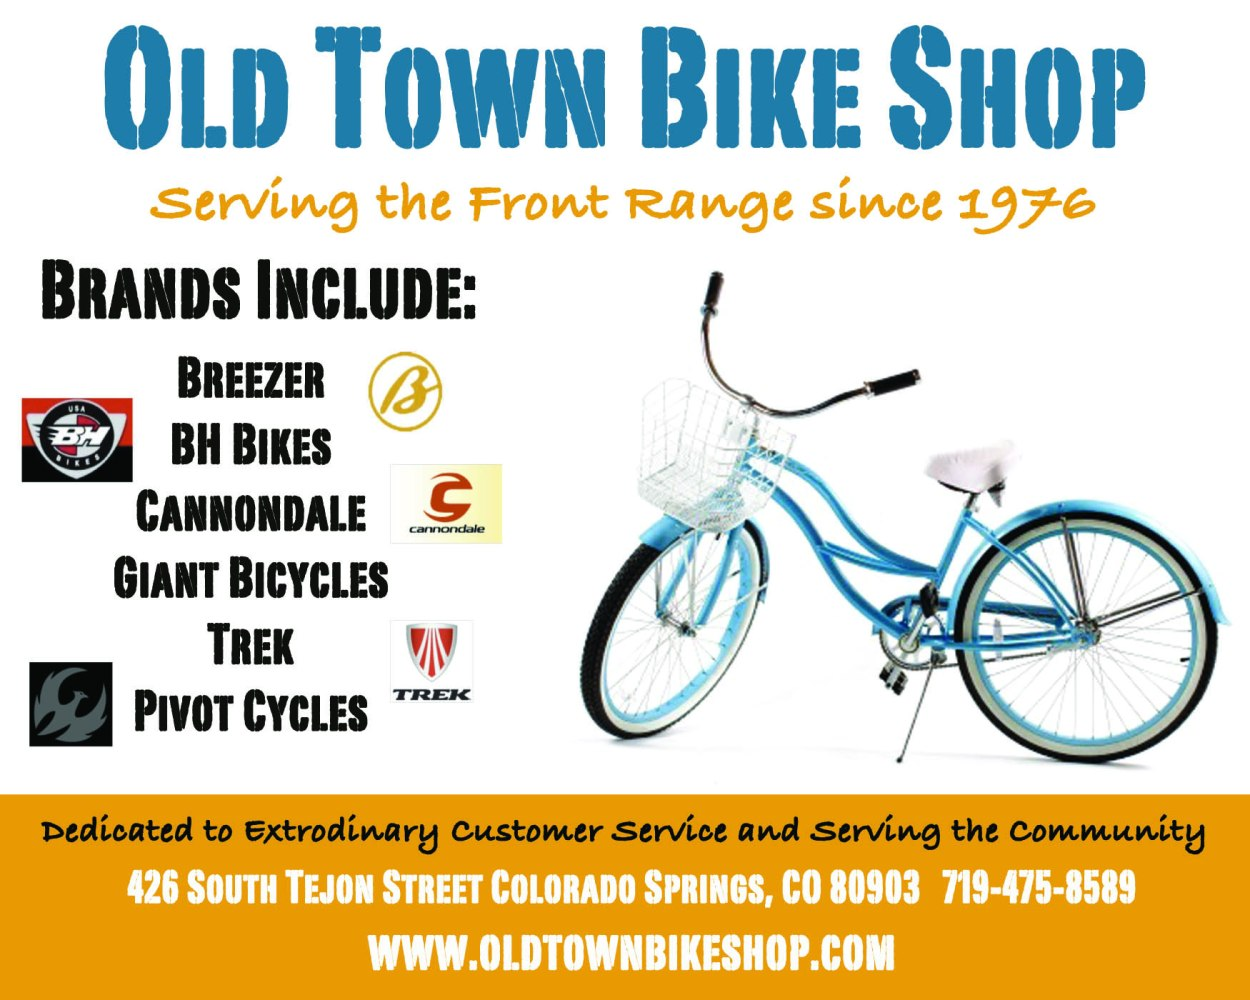 Old Town Bike Shop - Graphic Design from That's Natural! Marketing